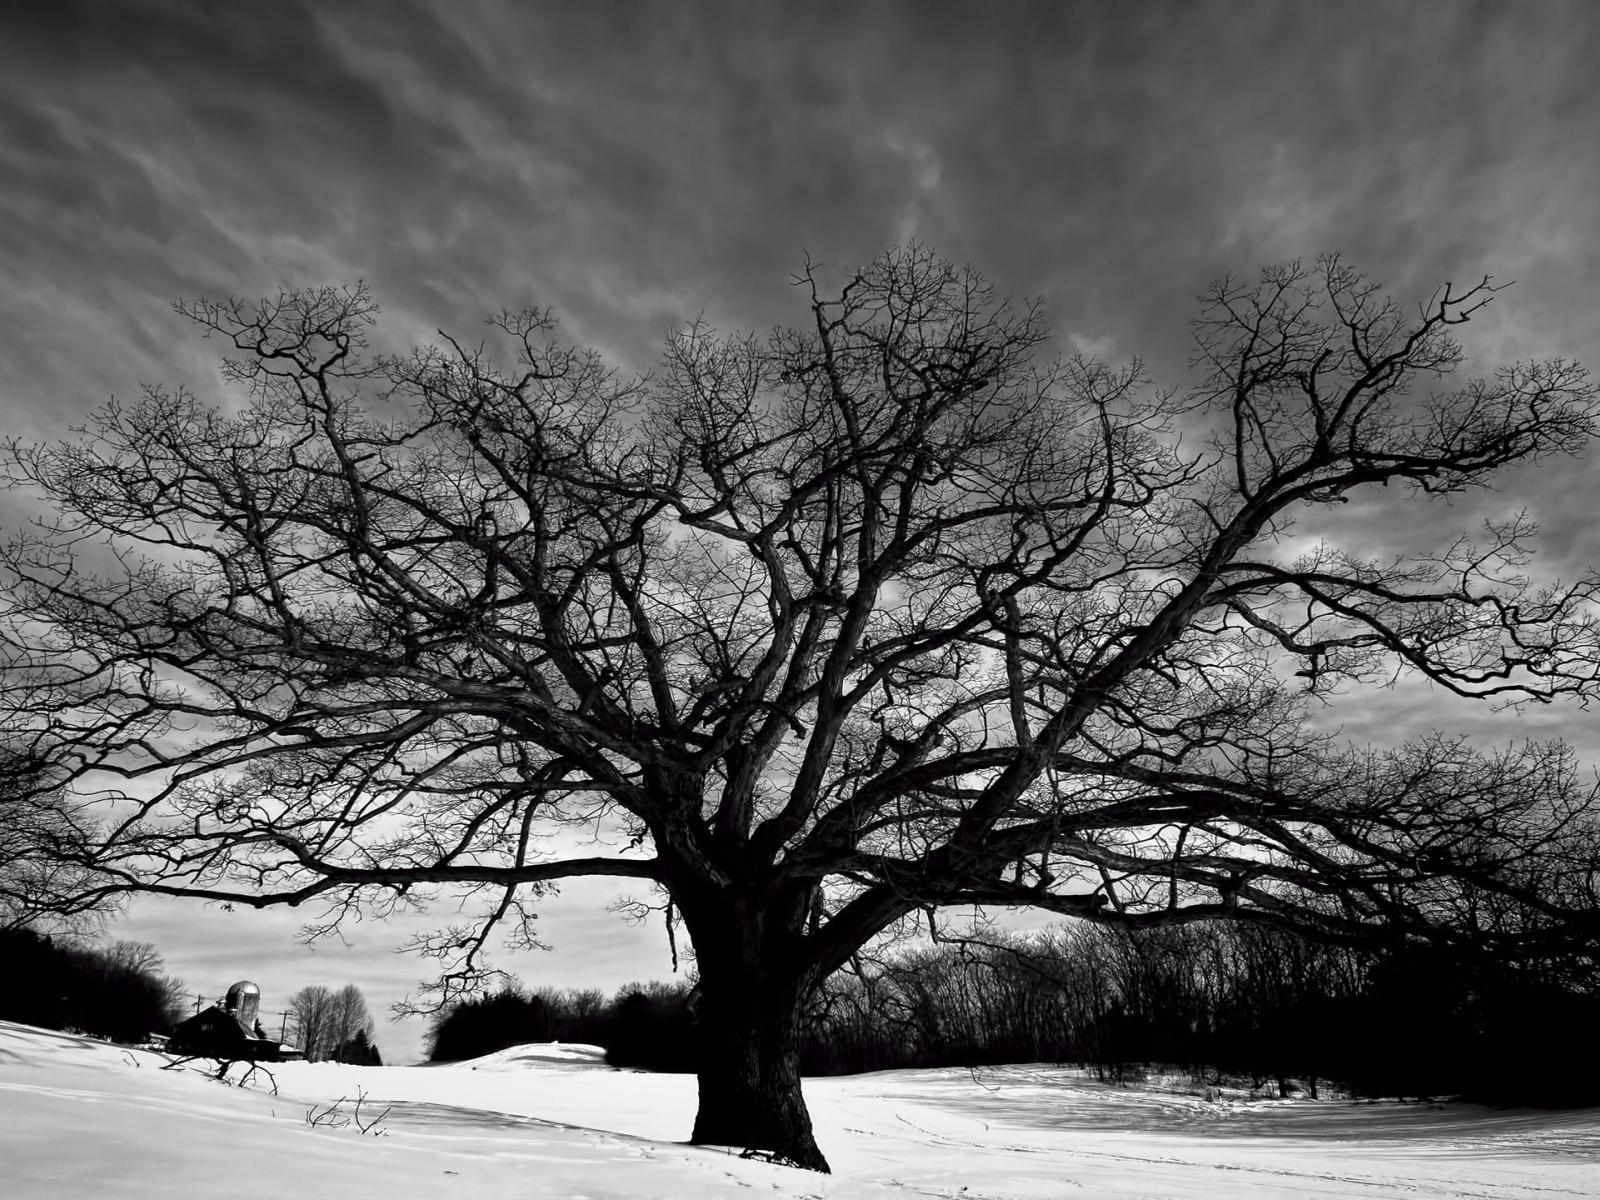 Download Big oak tree black and white wallpaper in Nature wallpapers 727